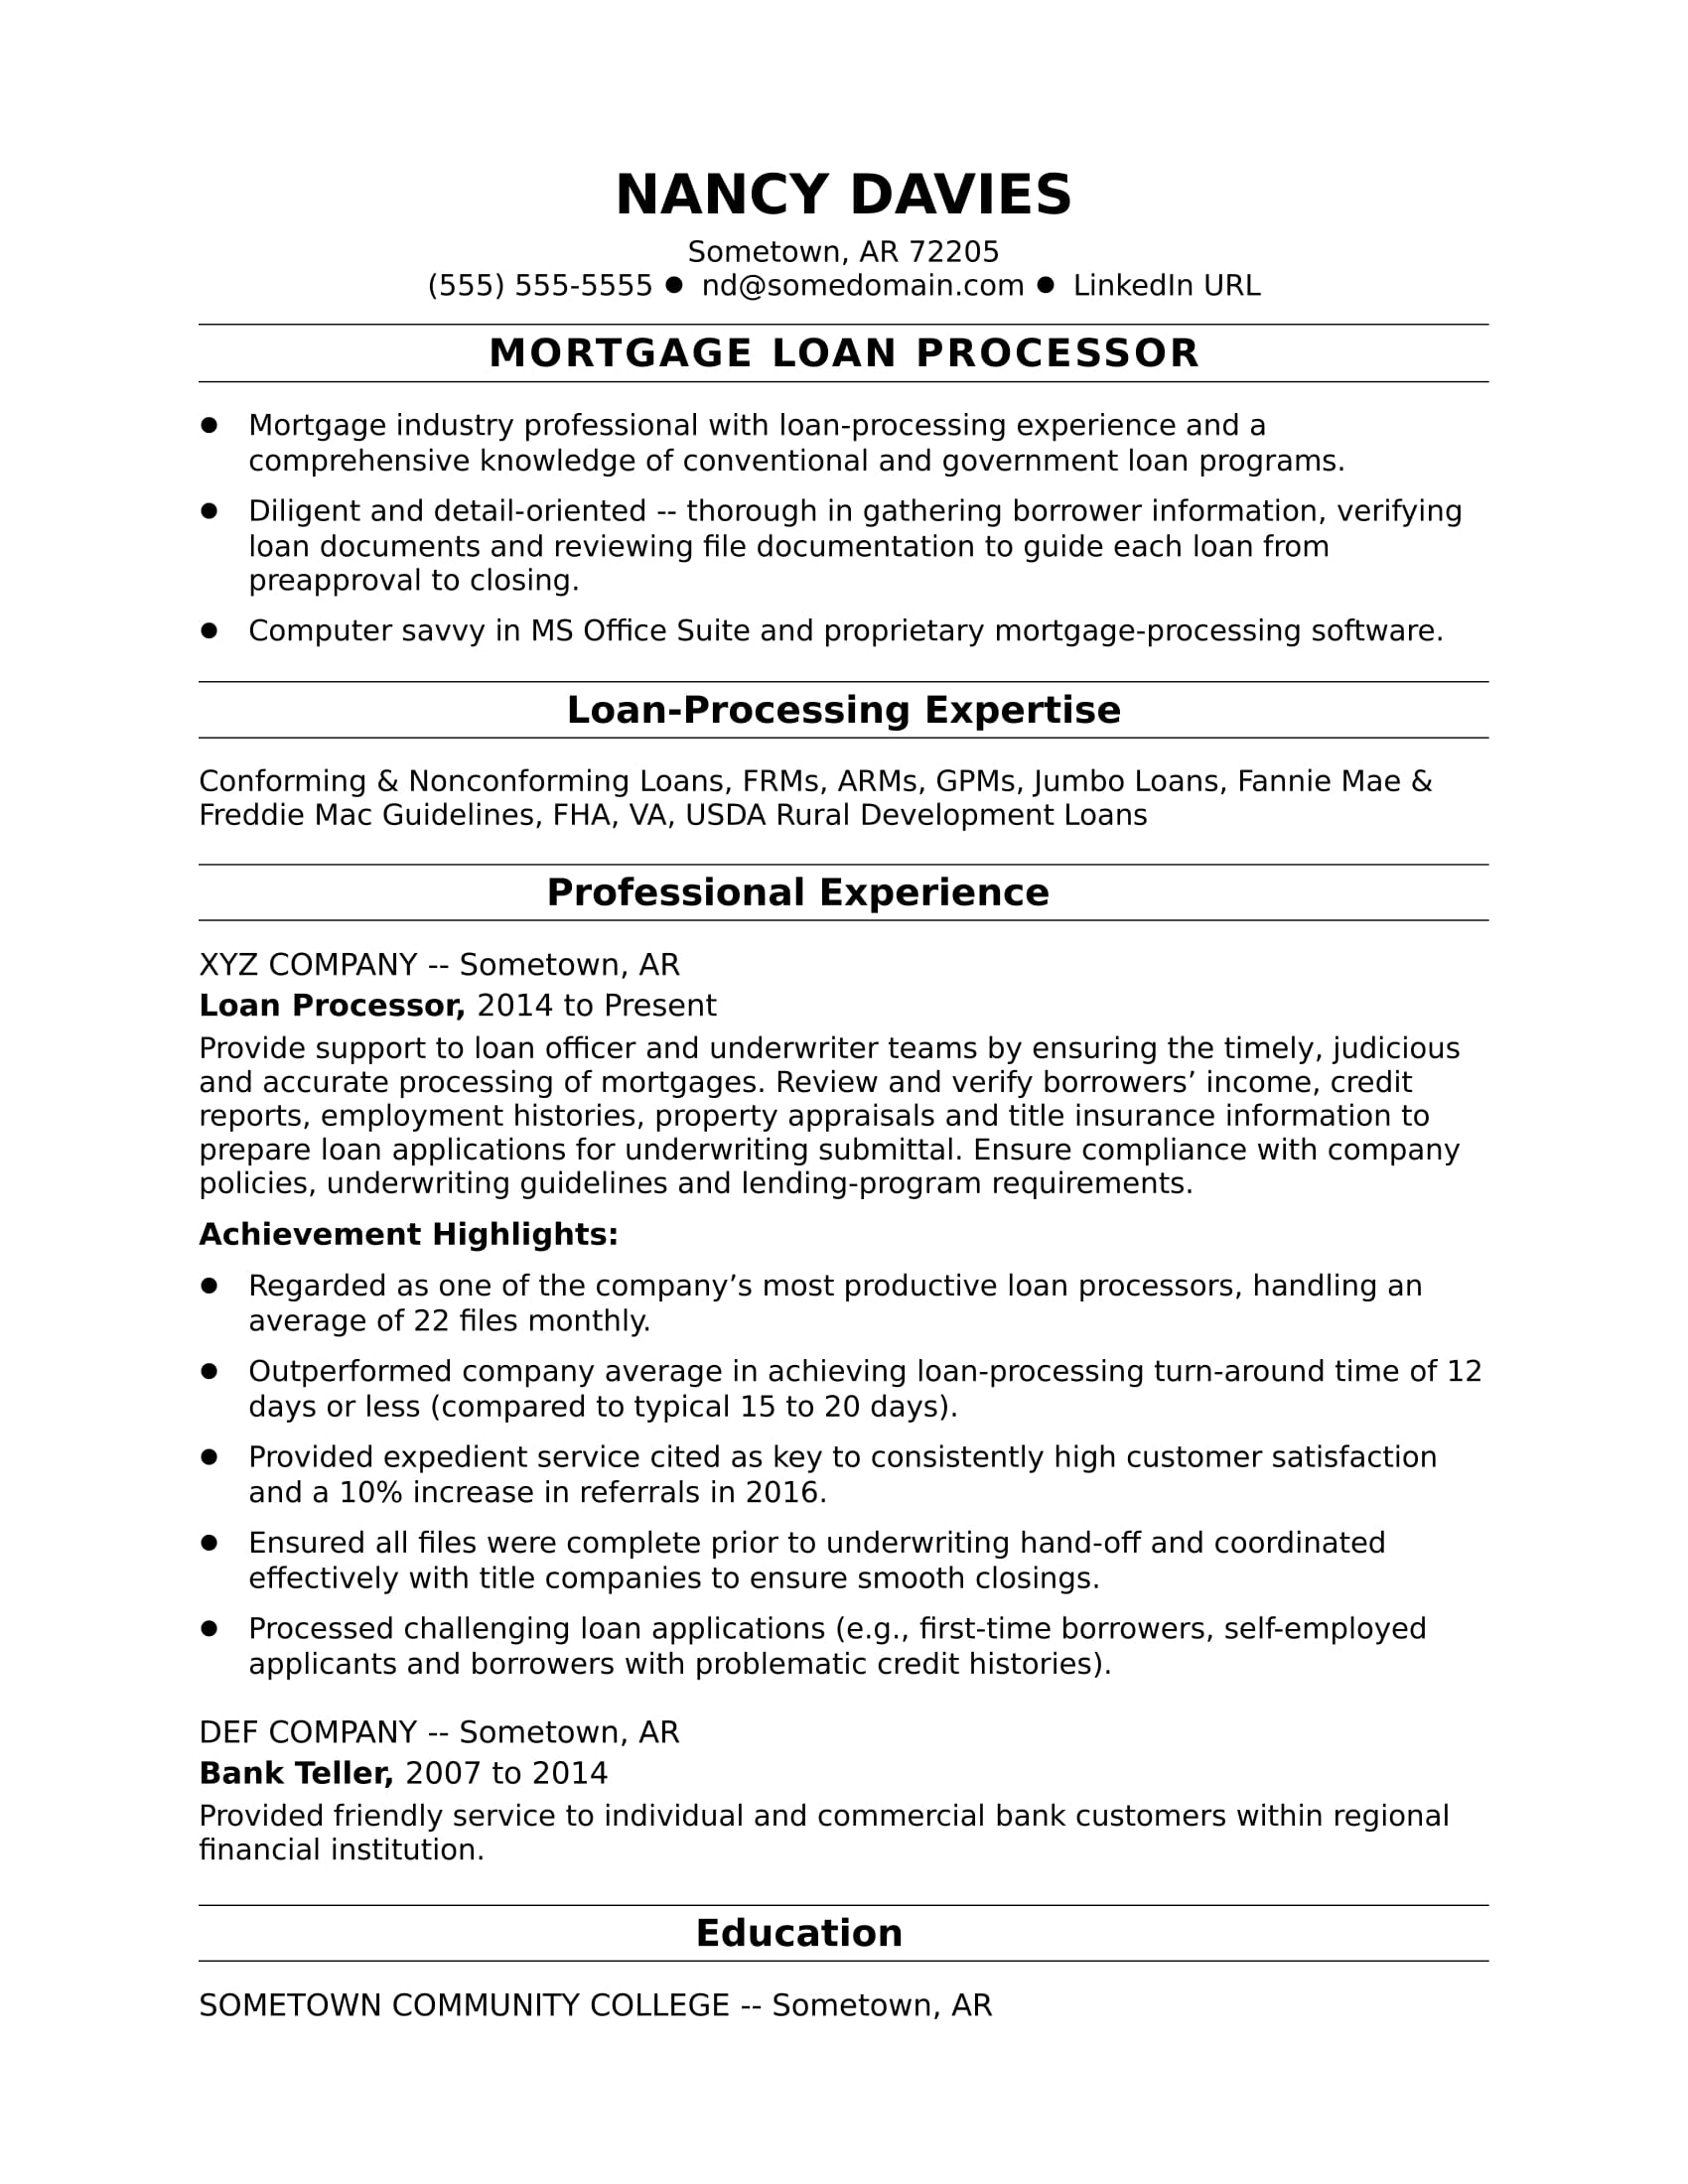 mortgage loan processor resume sample monster format guidelines air force crew chief Resume Resume Format Guidelines